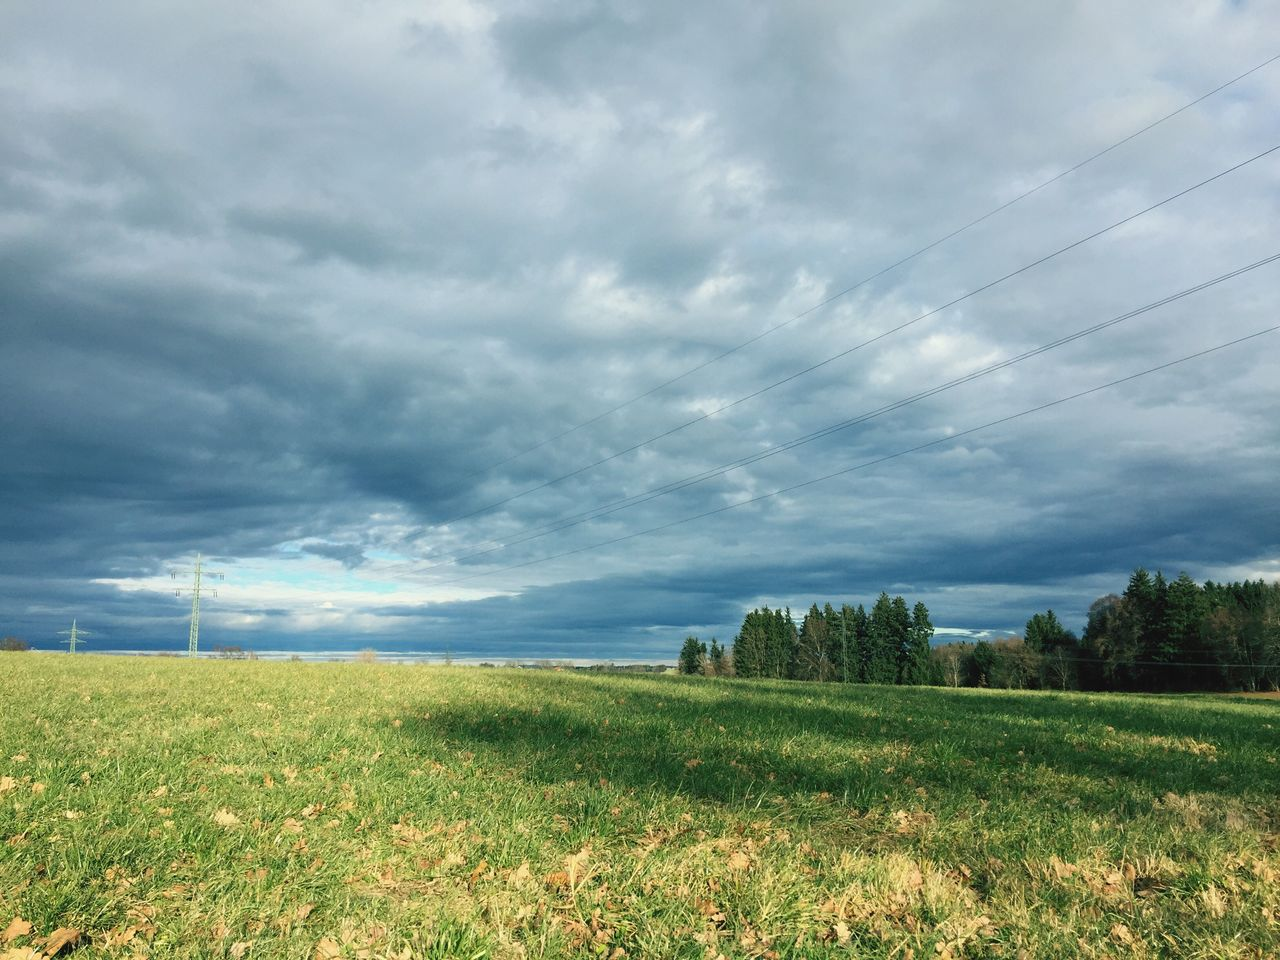 field, nature, beauty in nature, landscape, cloud - sky, sky, tranquility, scenics, tranquil scene, grass, no people, agriculture, day, rural scene, outdoors, cable, tree, growth, electricity pylon